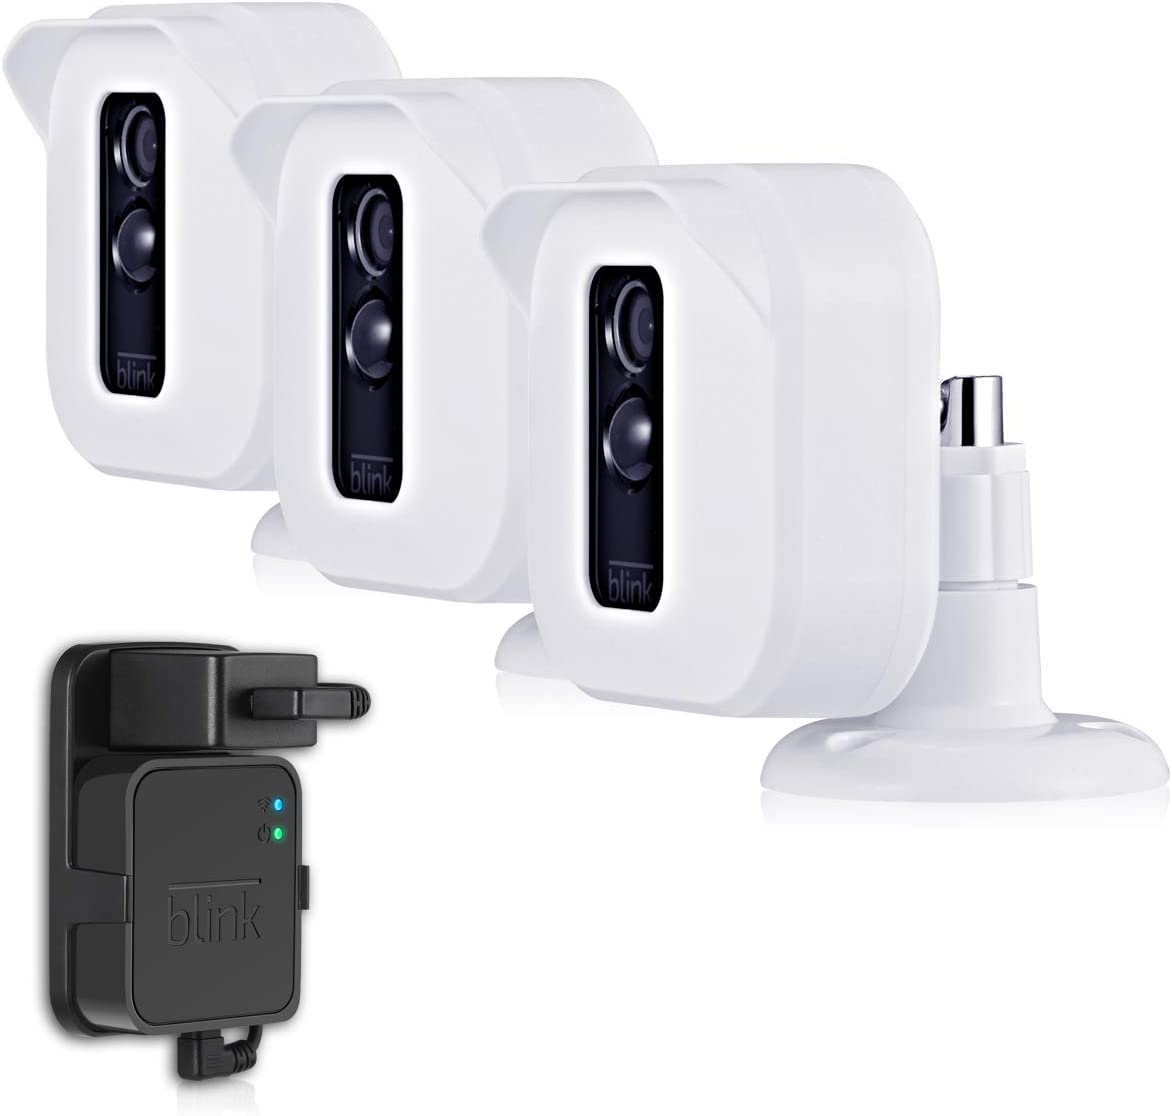 Blink XT2 Camera Mounts, Mrount Outdoor Weather Proof Housing with Adjustable Mount for Blink XT2/XT Cameras Home Security System, 3 Pack (White)